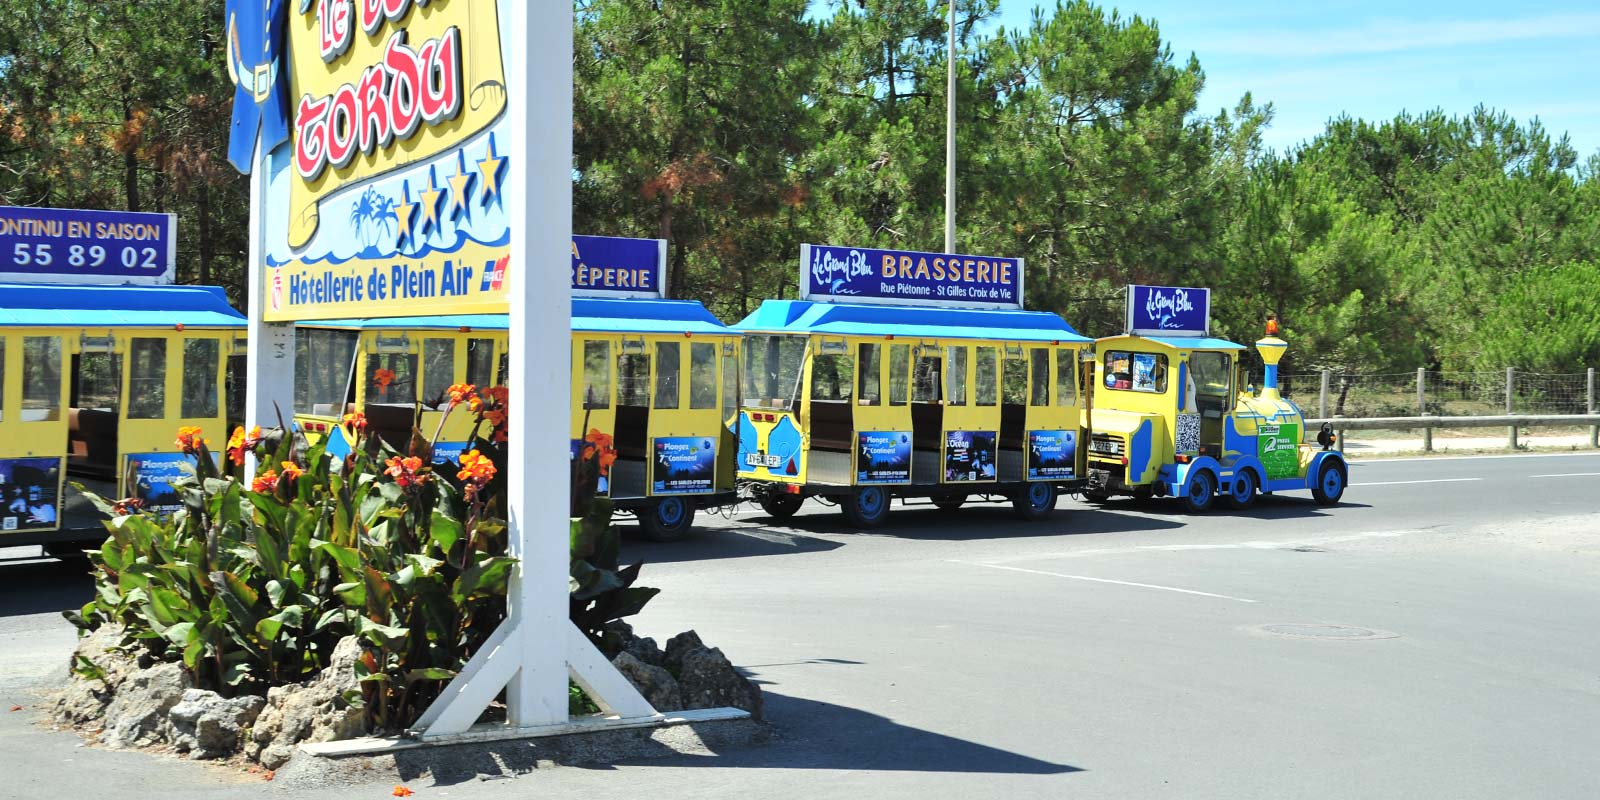 The little tourist train of Saint-Hilaire in Vendée in front of Le Bois Tordu campsite